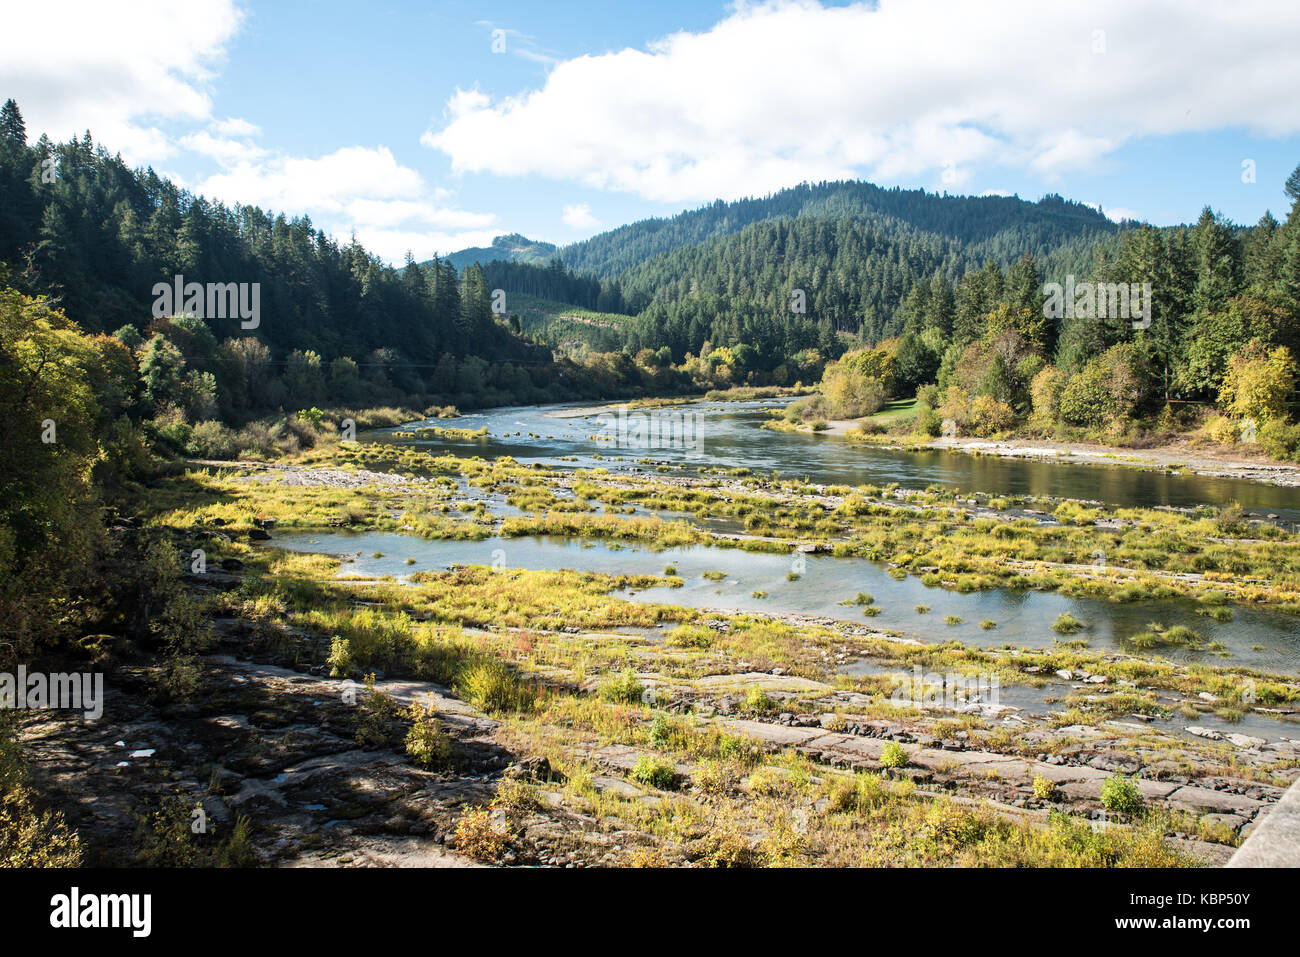 Placid Umpqua River In October-In early October, on a quiet, mostly sunny day, the Umpqua River flows dreamily through - Stock Image